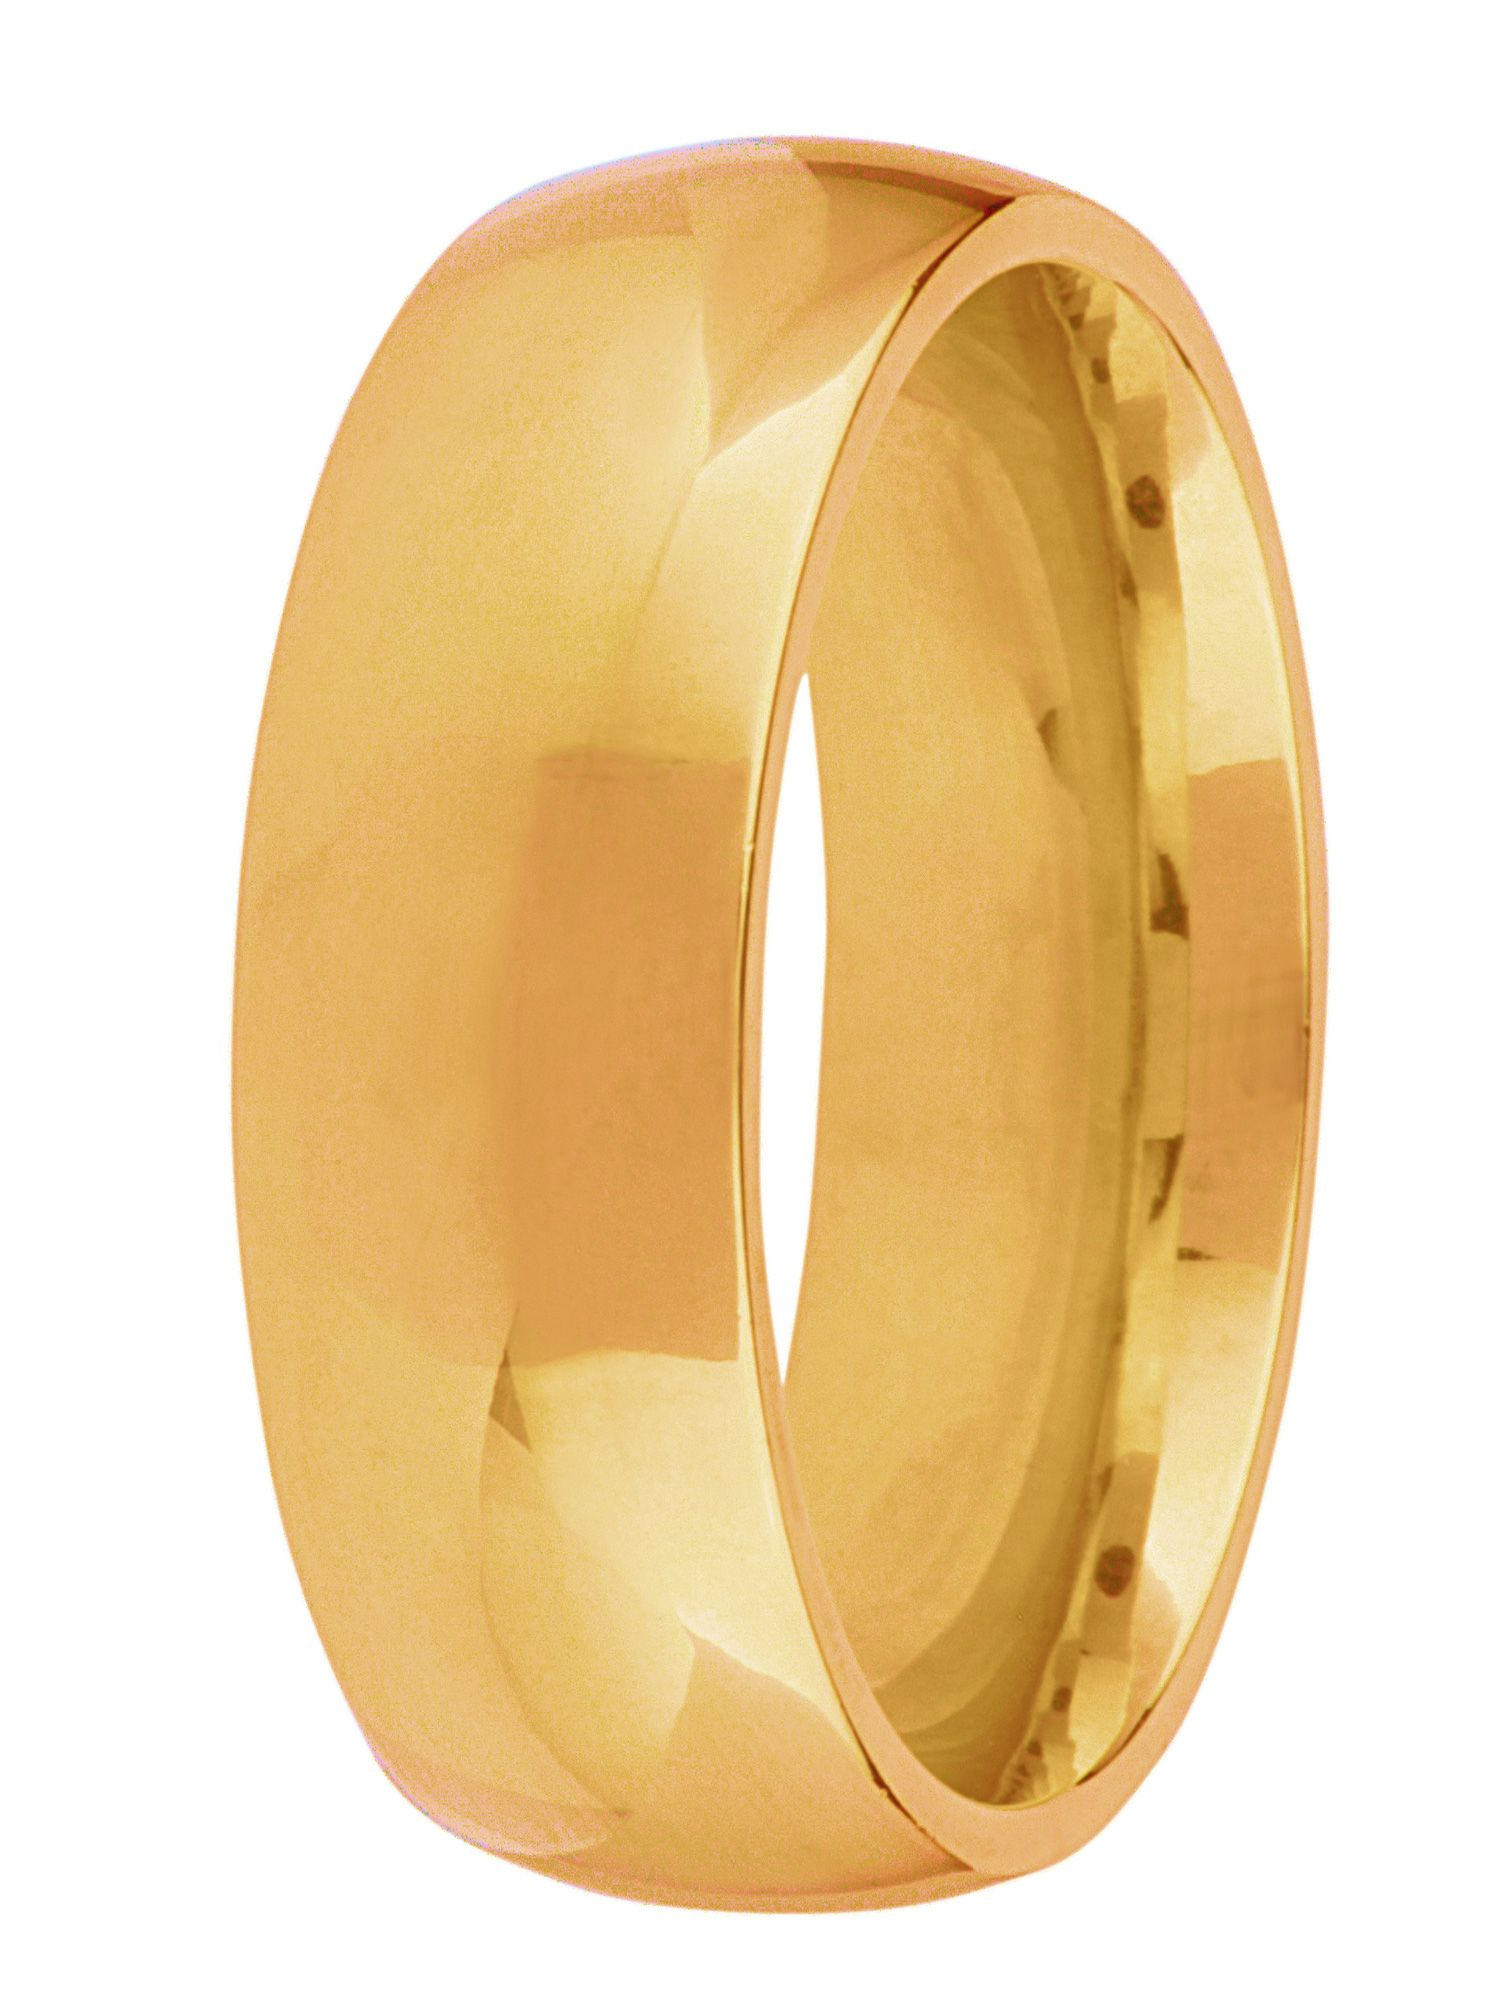 Goldsmiths Grooms 18ct gold heavy court 7mm wedding ring